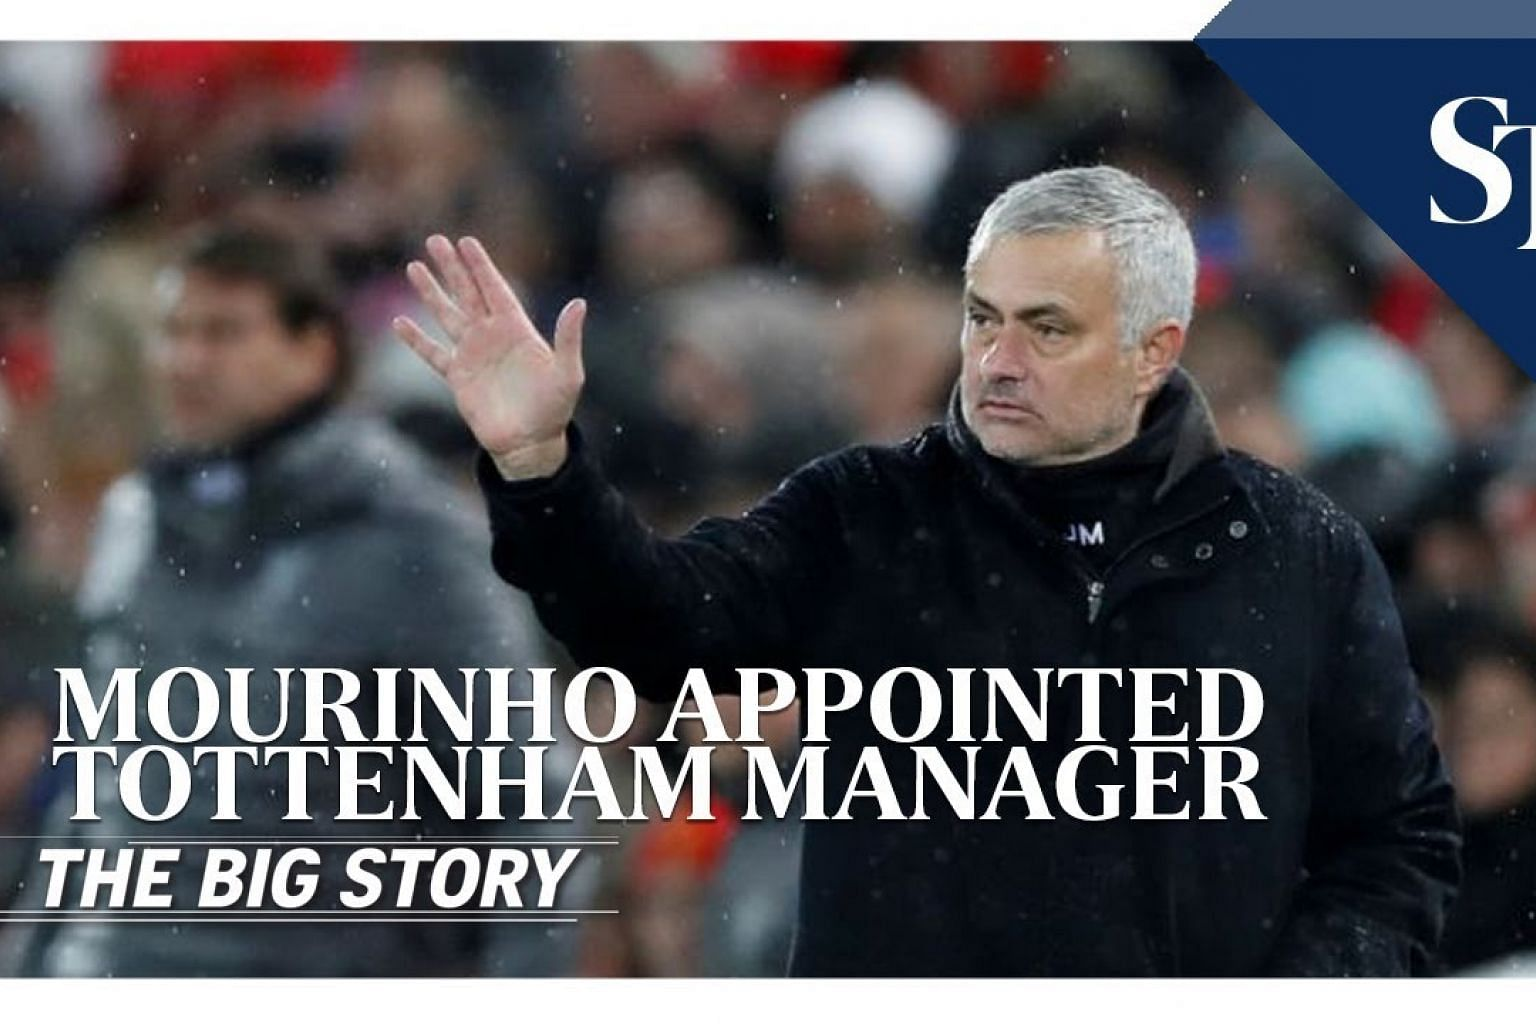 Mourinho appointed as Tottenham's new manager | THE BIG STORY | The Straits Times